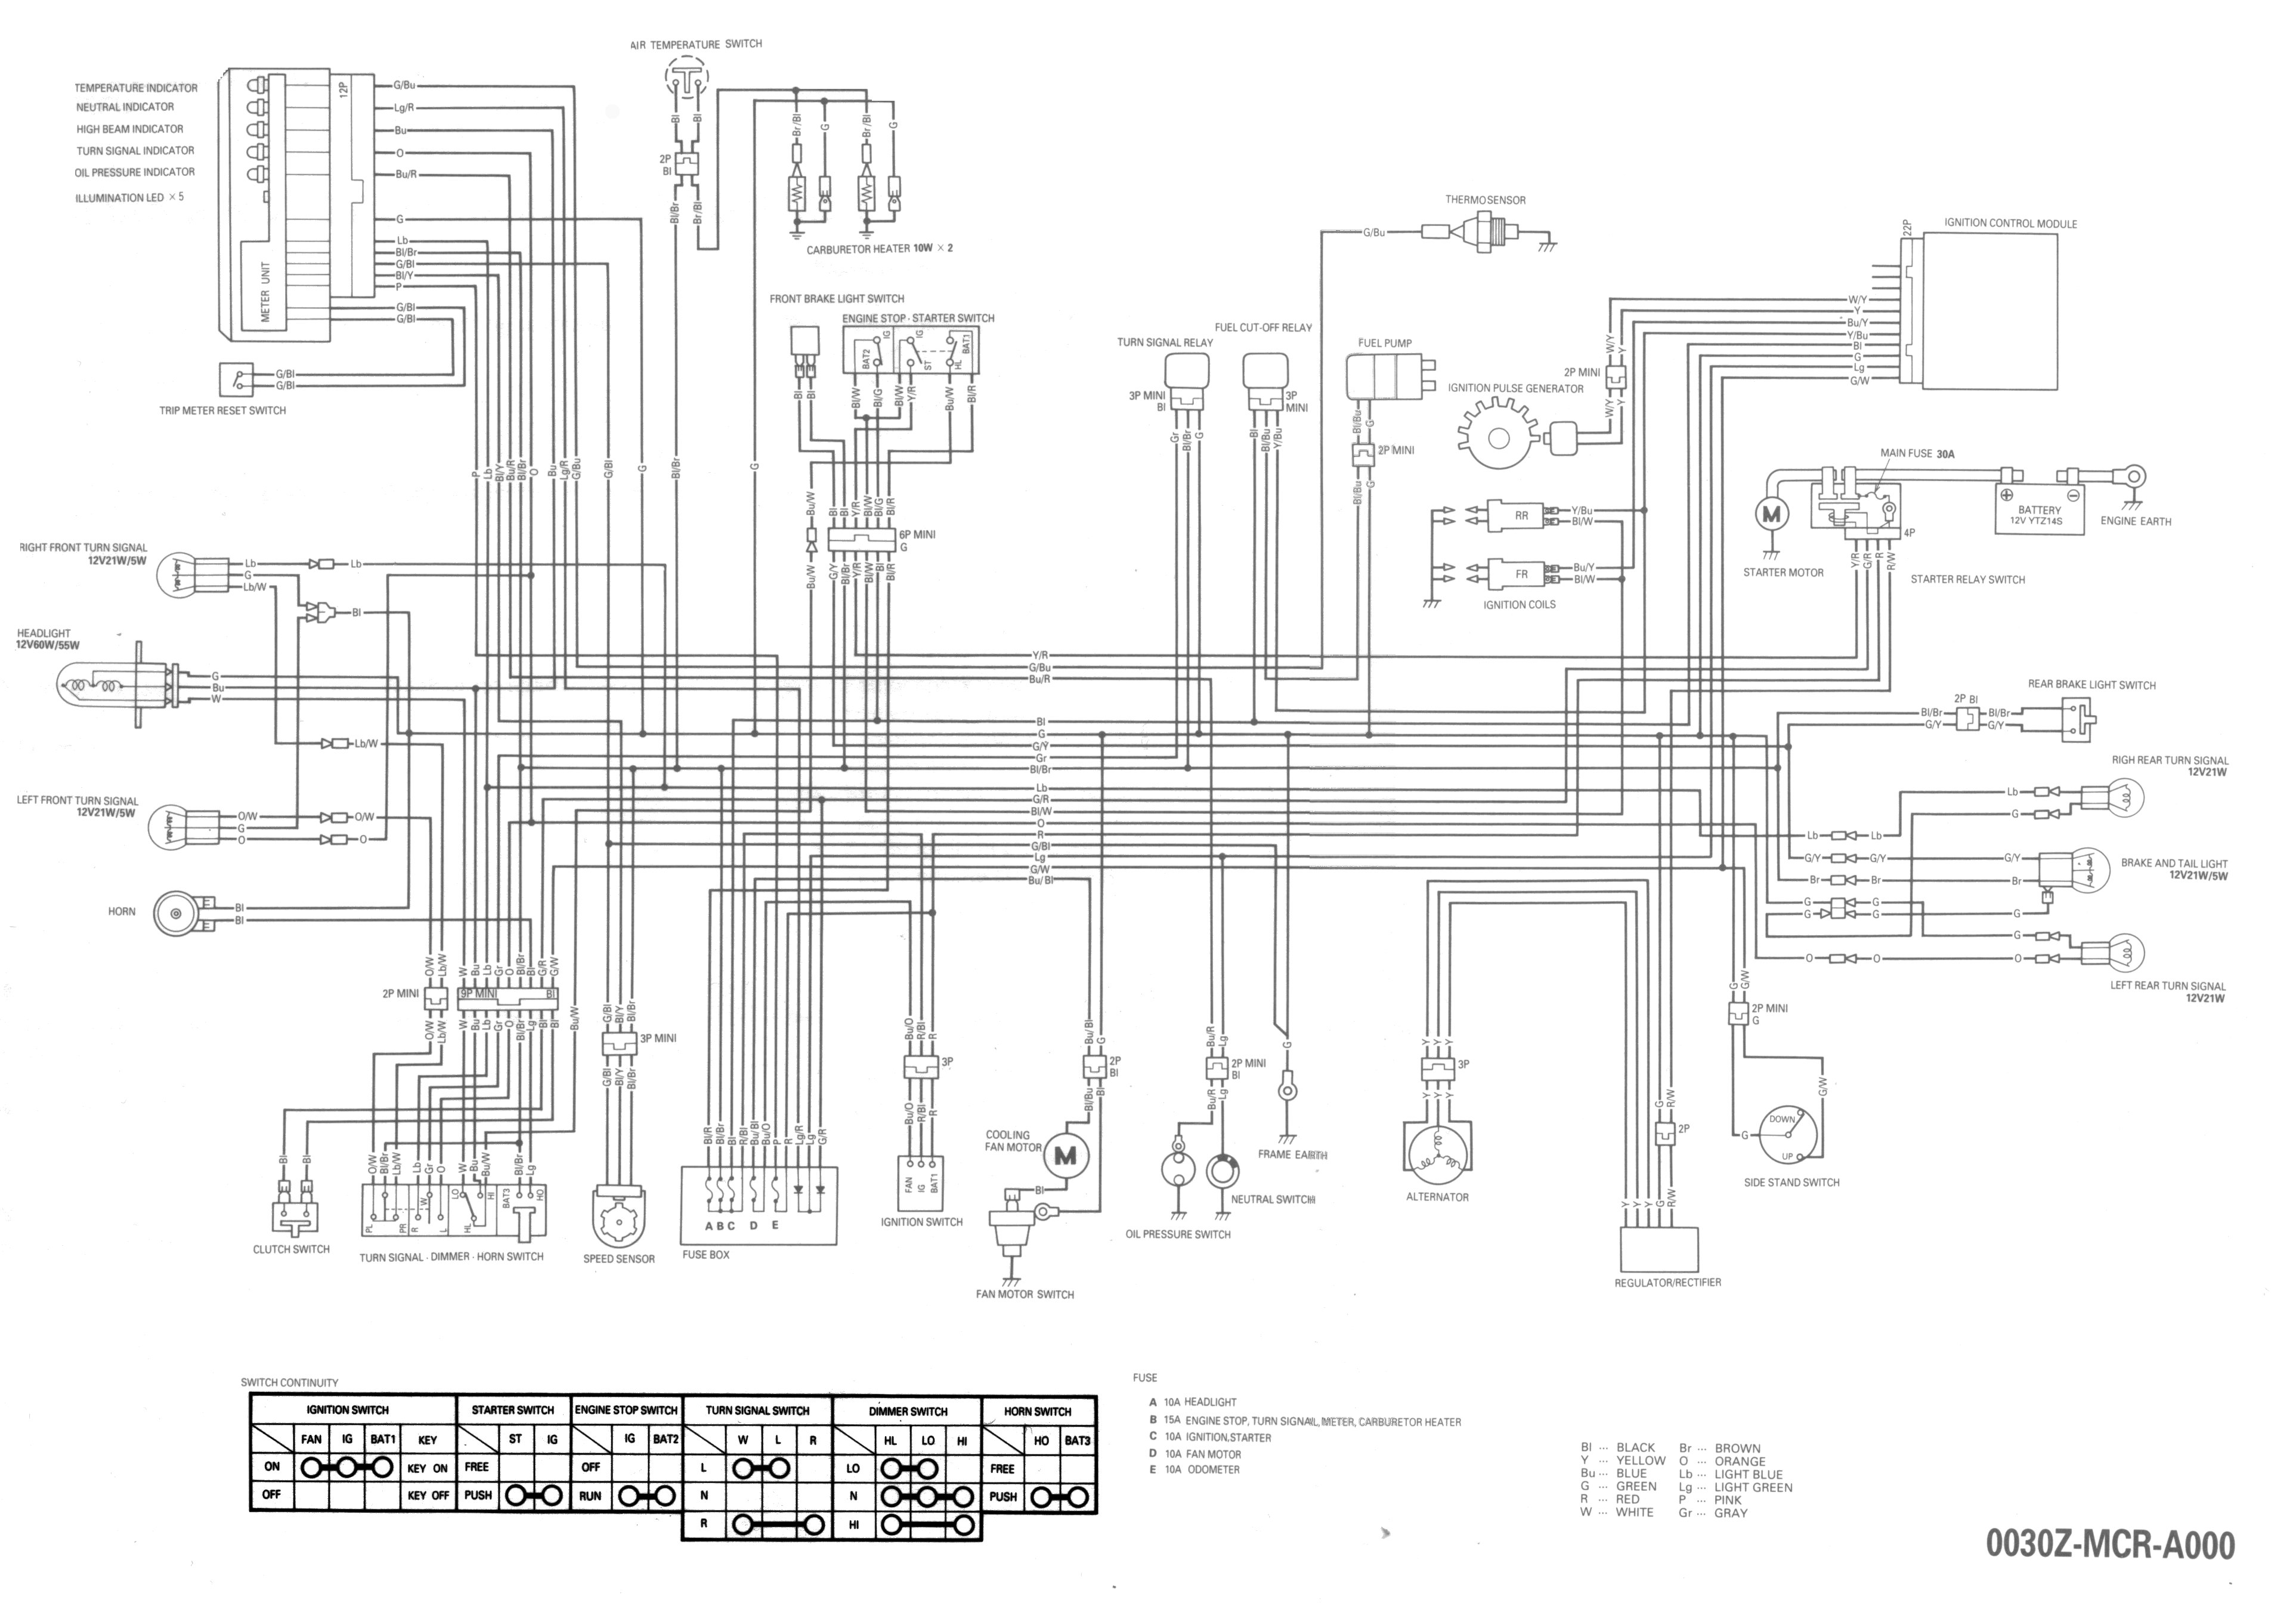 Honda Shadow Vt1100 Wiring Diagram FULL HD Version Wiring Diagram - LAMM- DIAGRAM.EXPERTSUNIVERSITY.IT Diagram Database